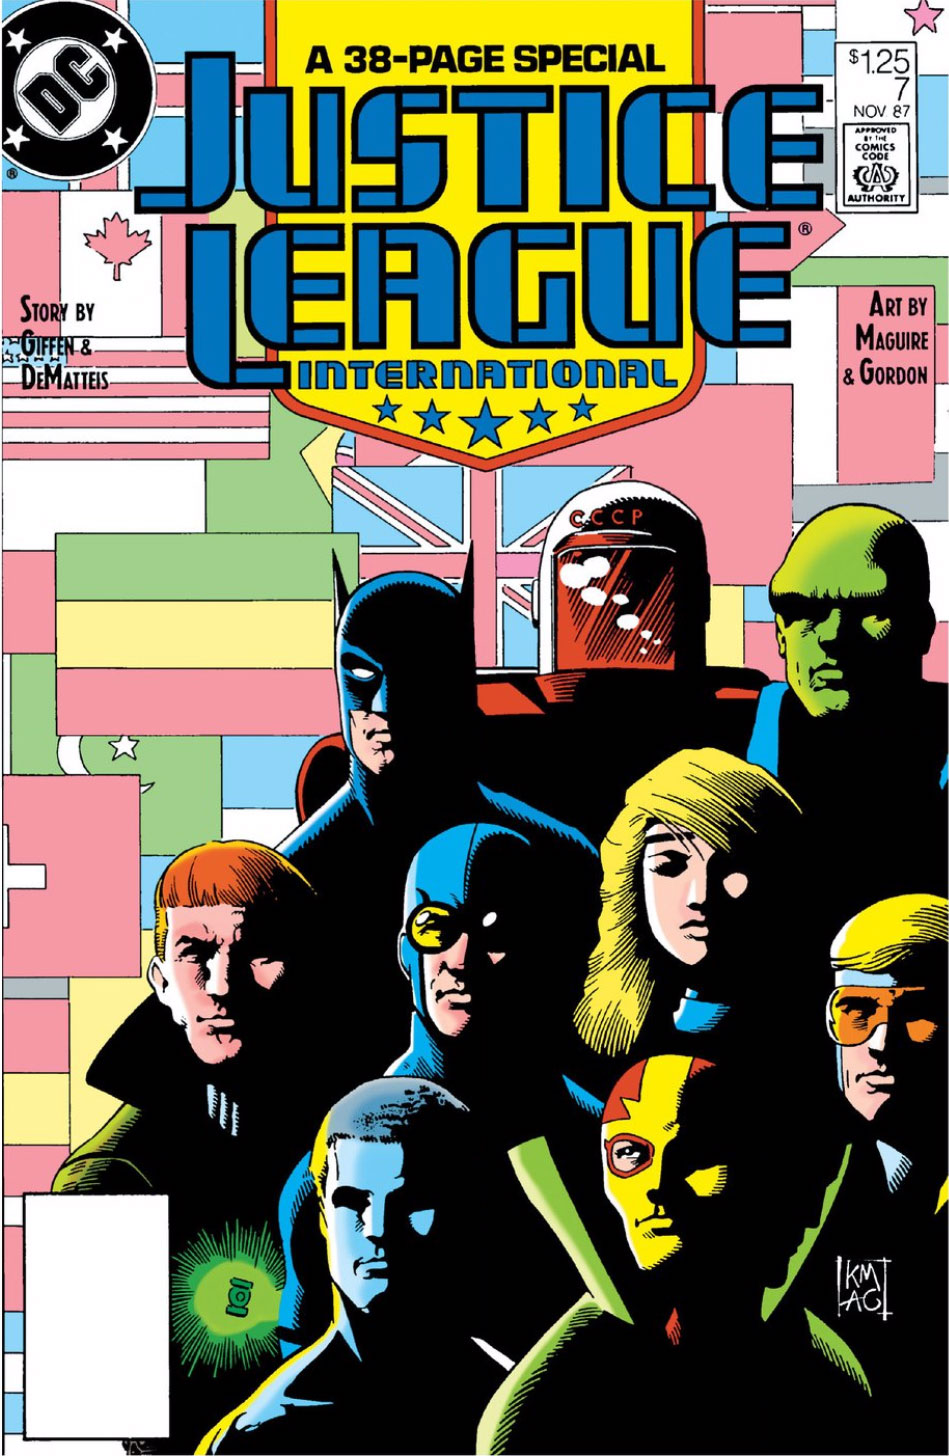 Justice League International #7 cover by Kevin Maguire and Al Gordon